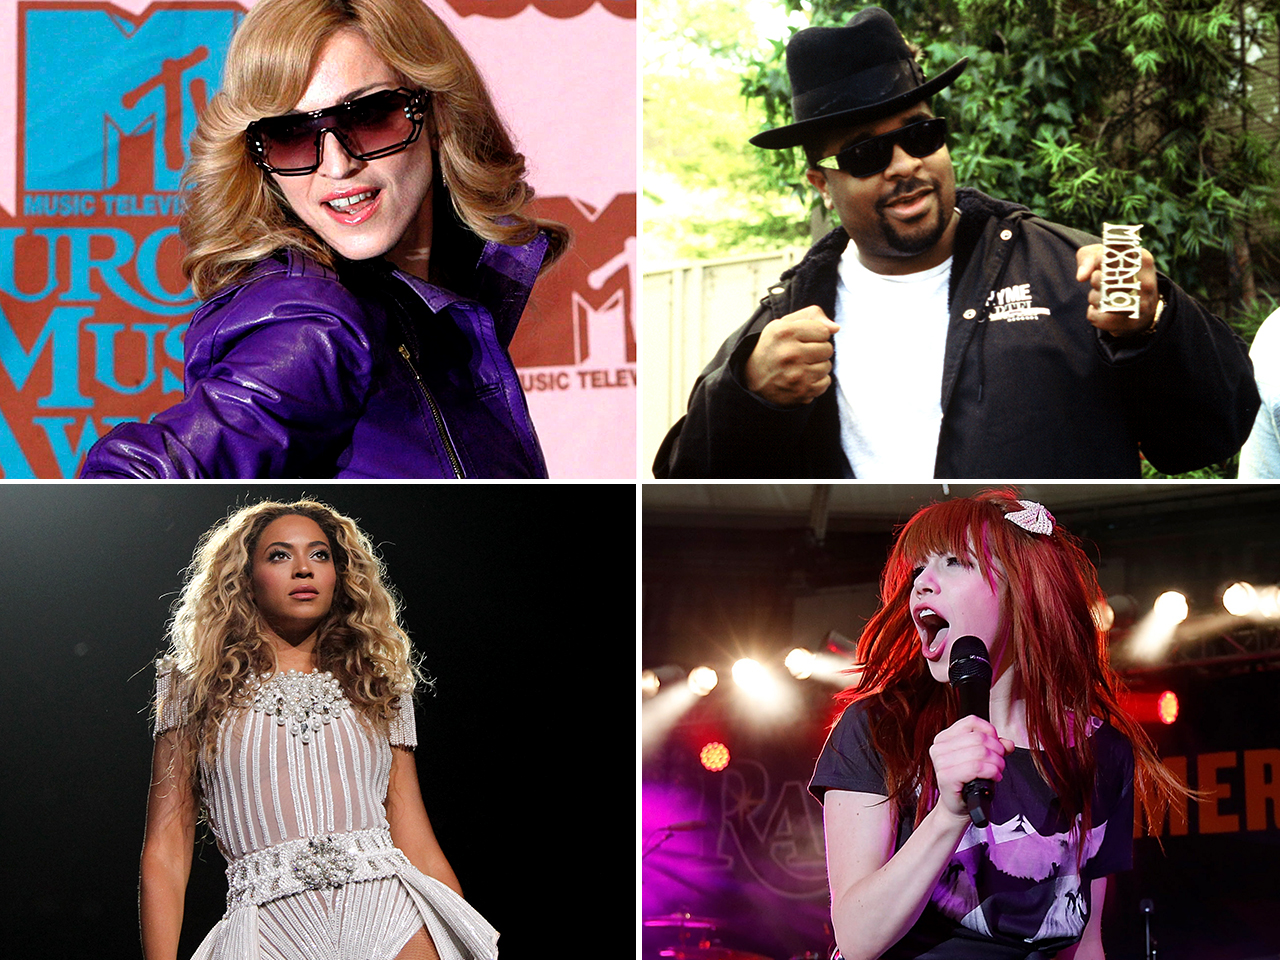 IMAGE:Madonna, Sir Mix-A-Lot, Carly Rae Jepsen and Beyonce